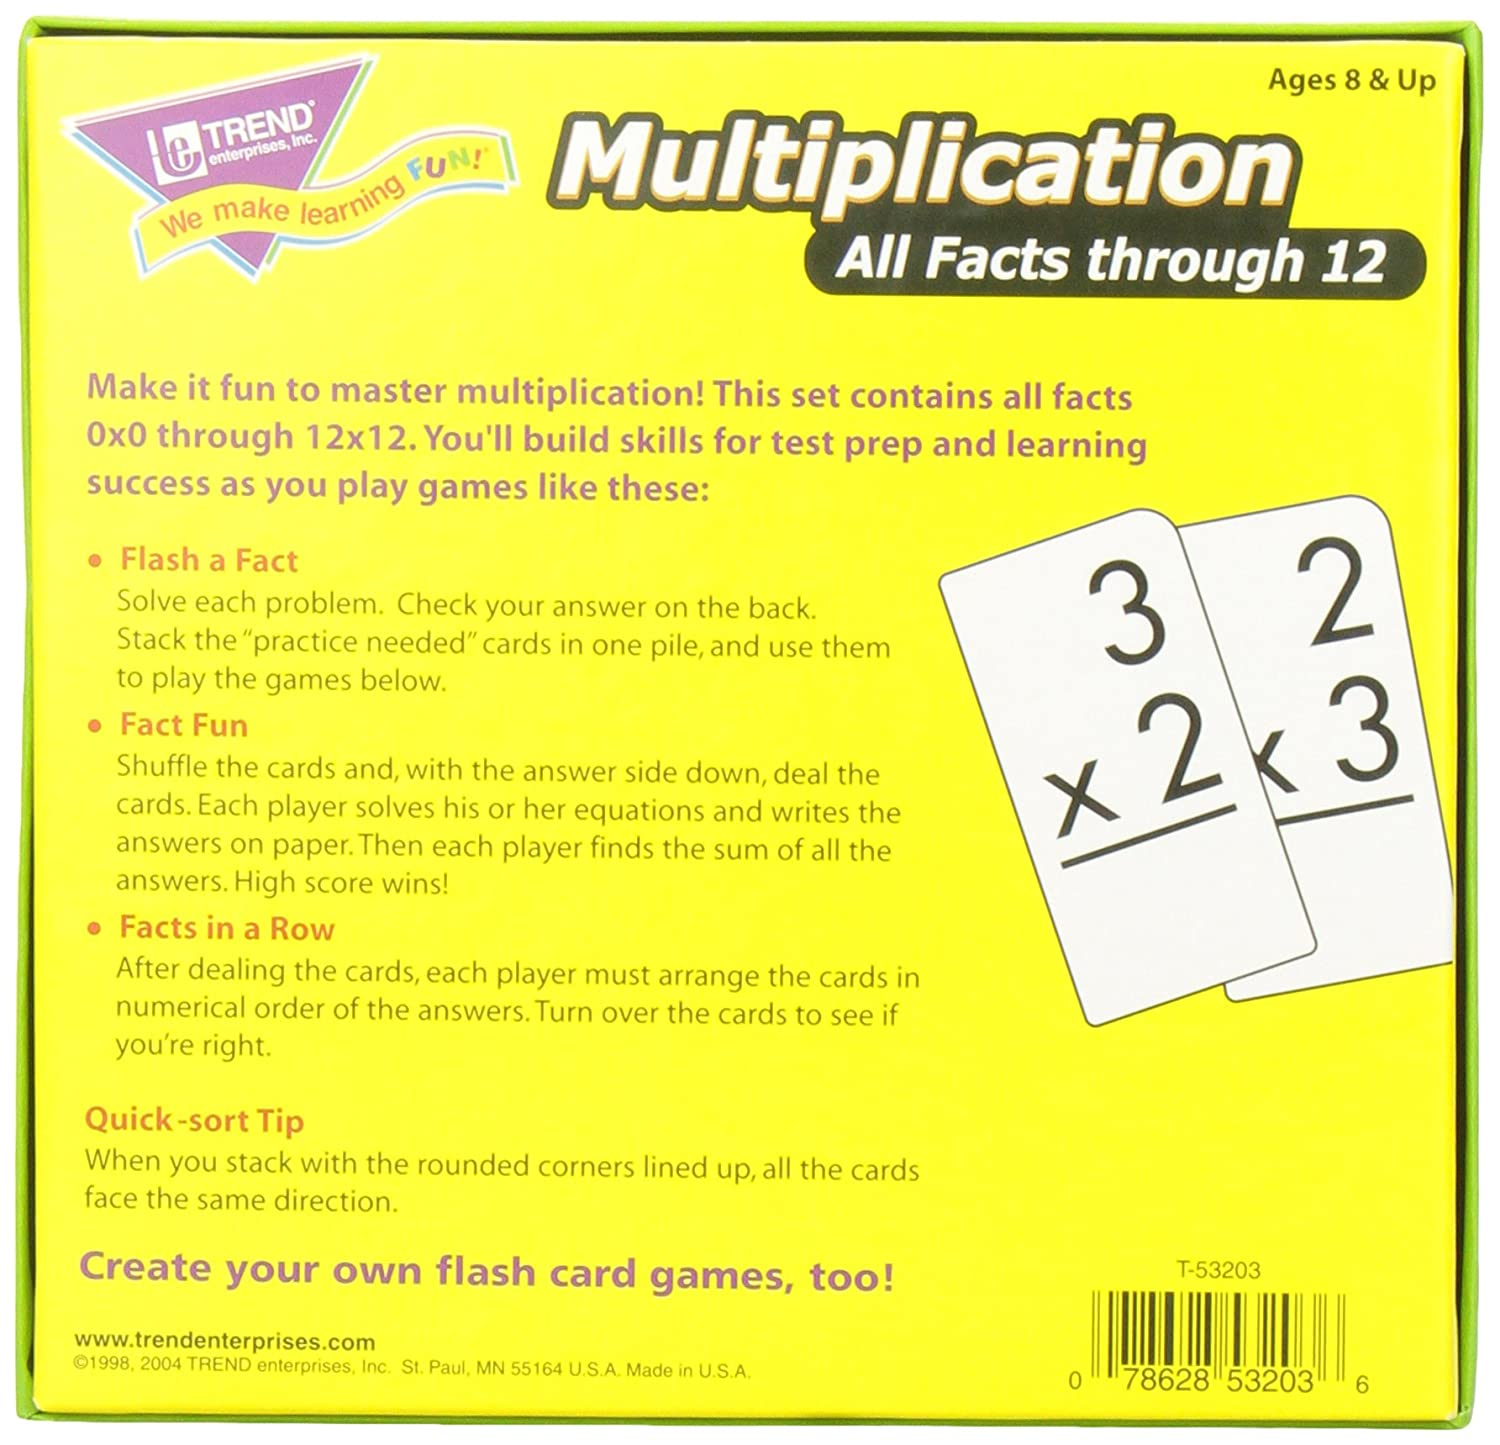 Worksheet Free Printable Multiplication Flash Cards 1-12 worksheet multiplication flash cards printable 0 12 mikyu free without answers mastering math facts